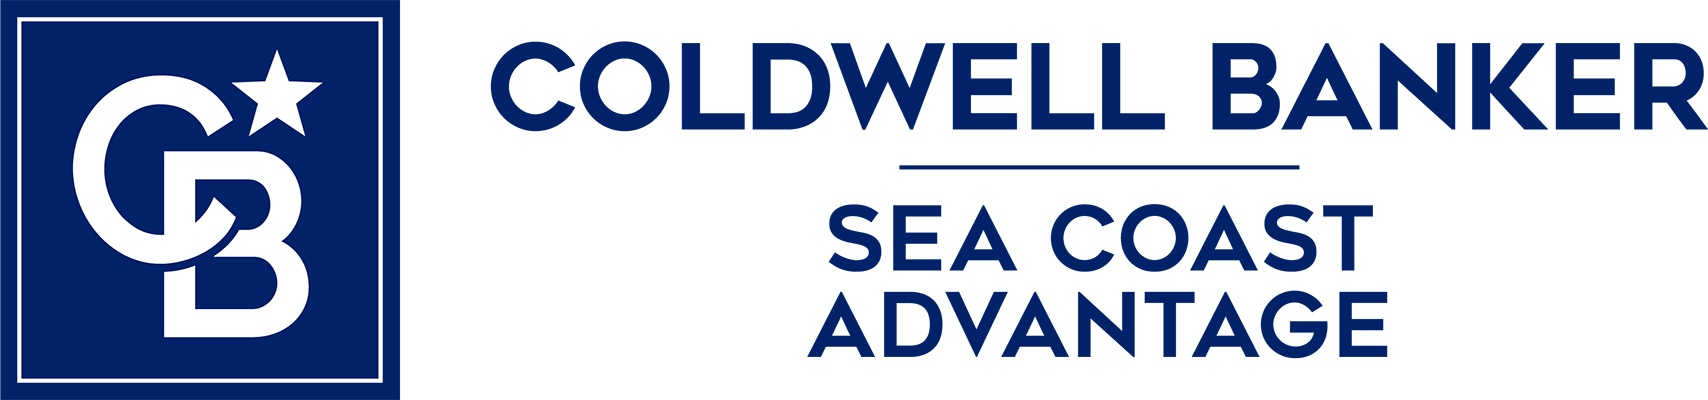 Bill Saffo - Coldwell Banker Sea Coast Advantage Realty